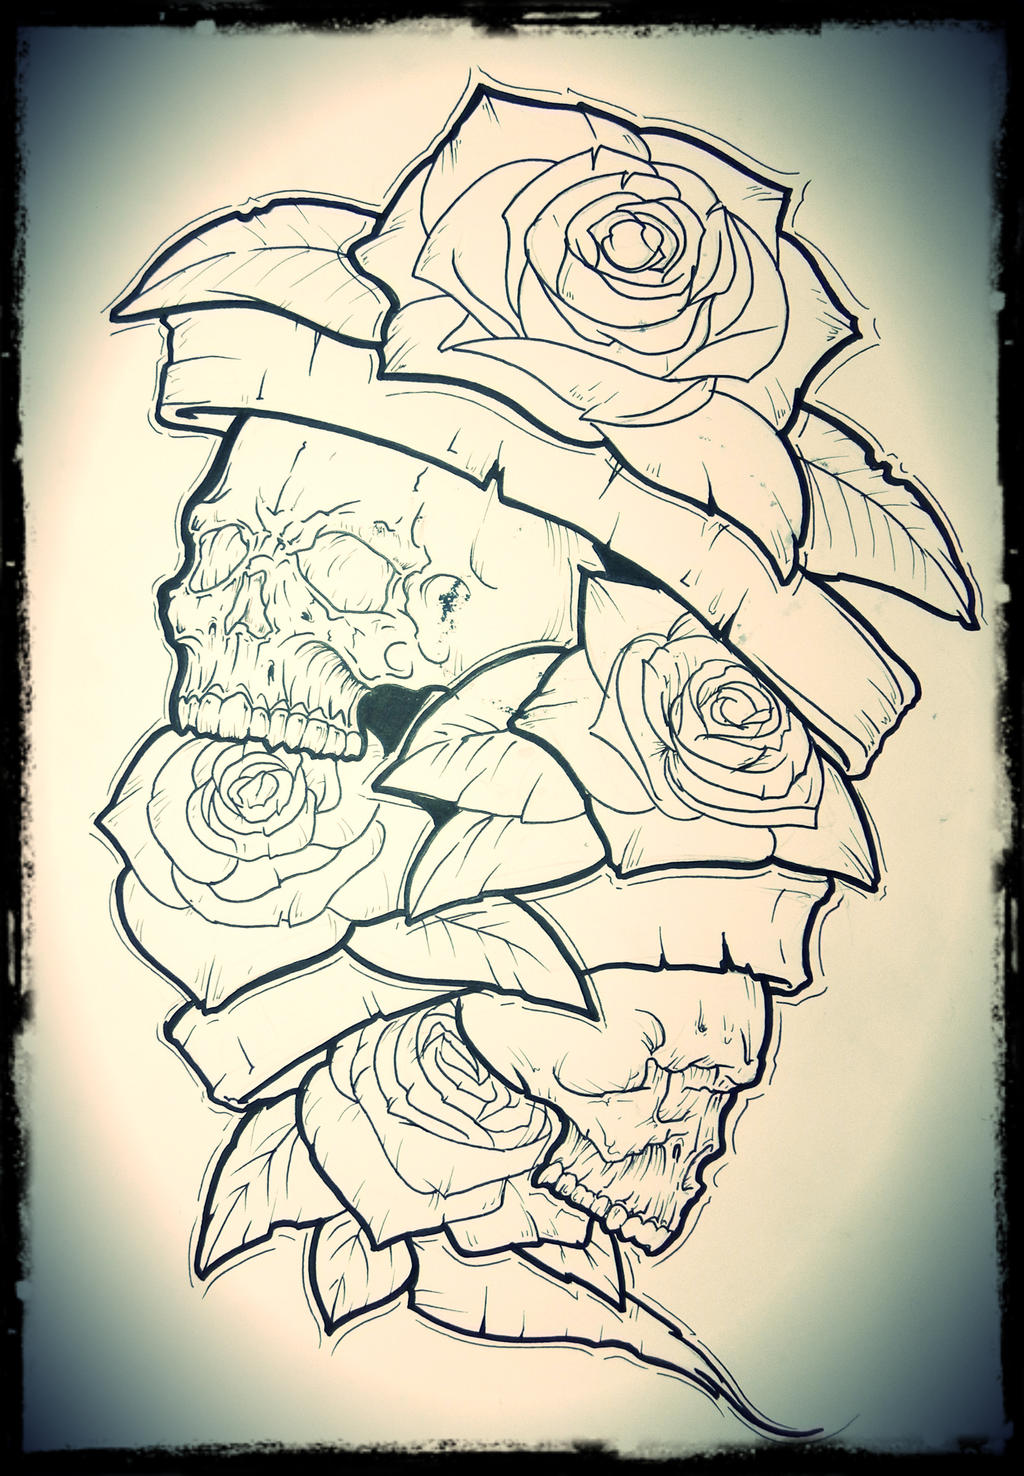 New school skulls with roses ant tapes by TimHag on DeviantArt